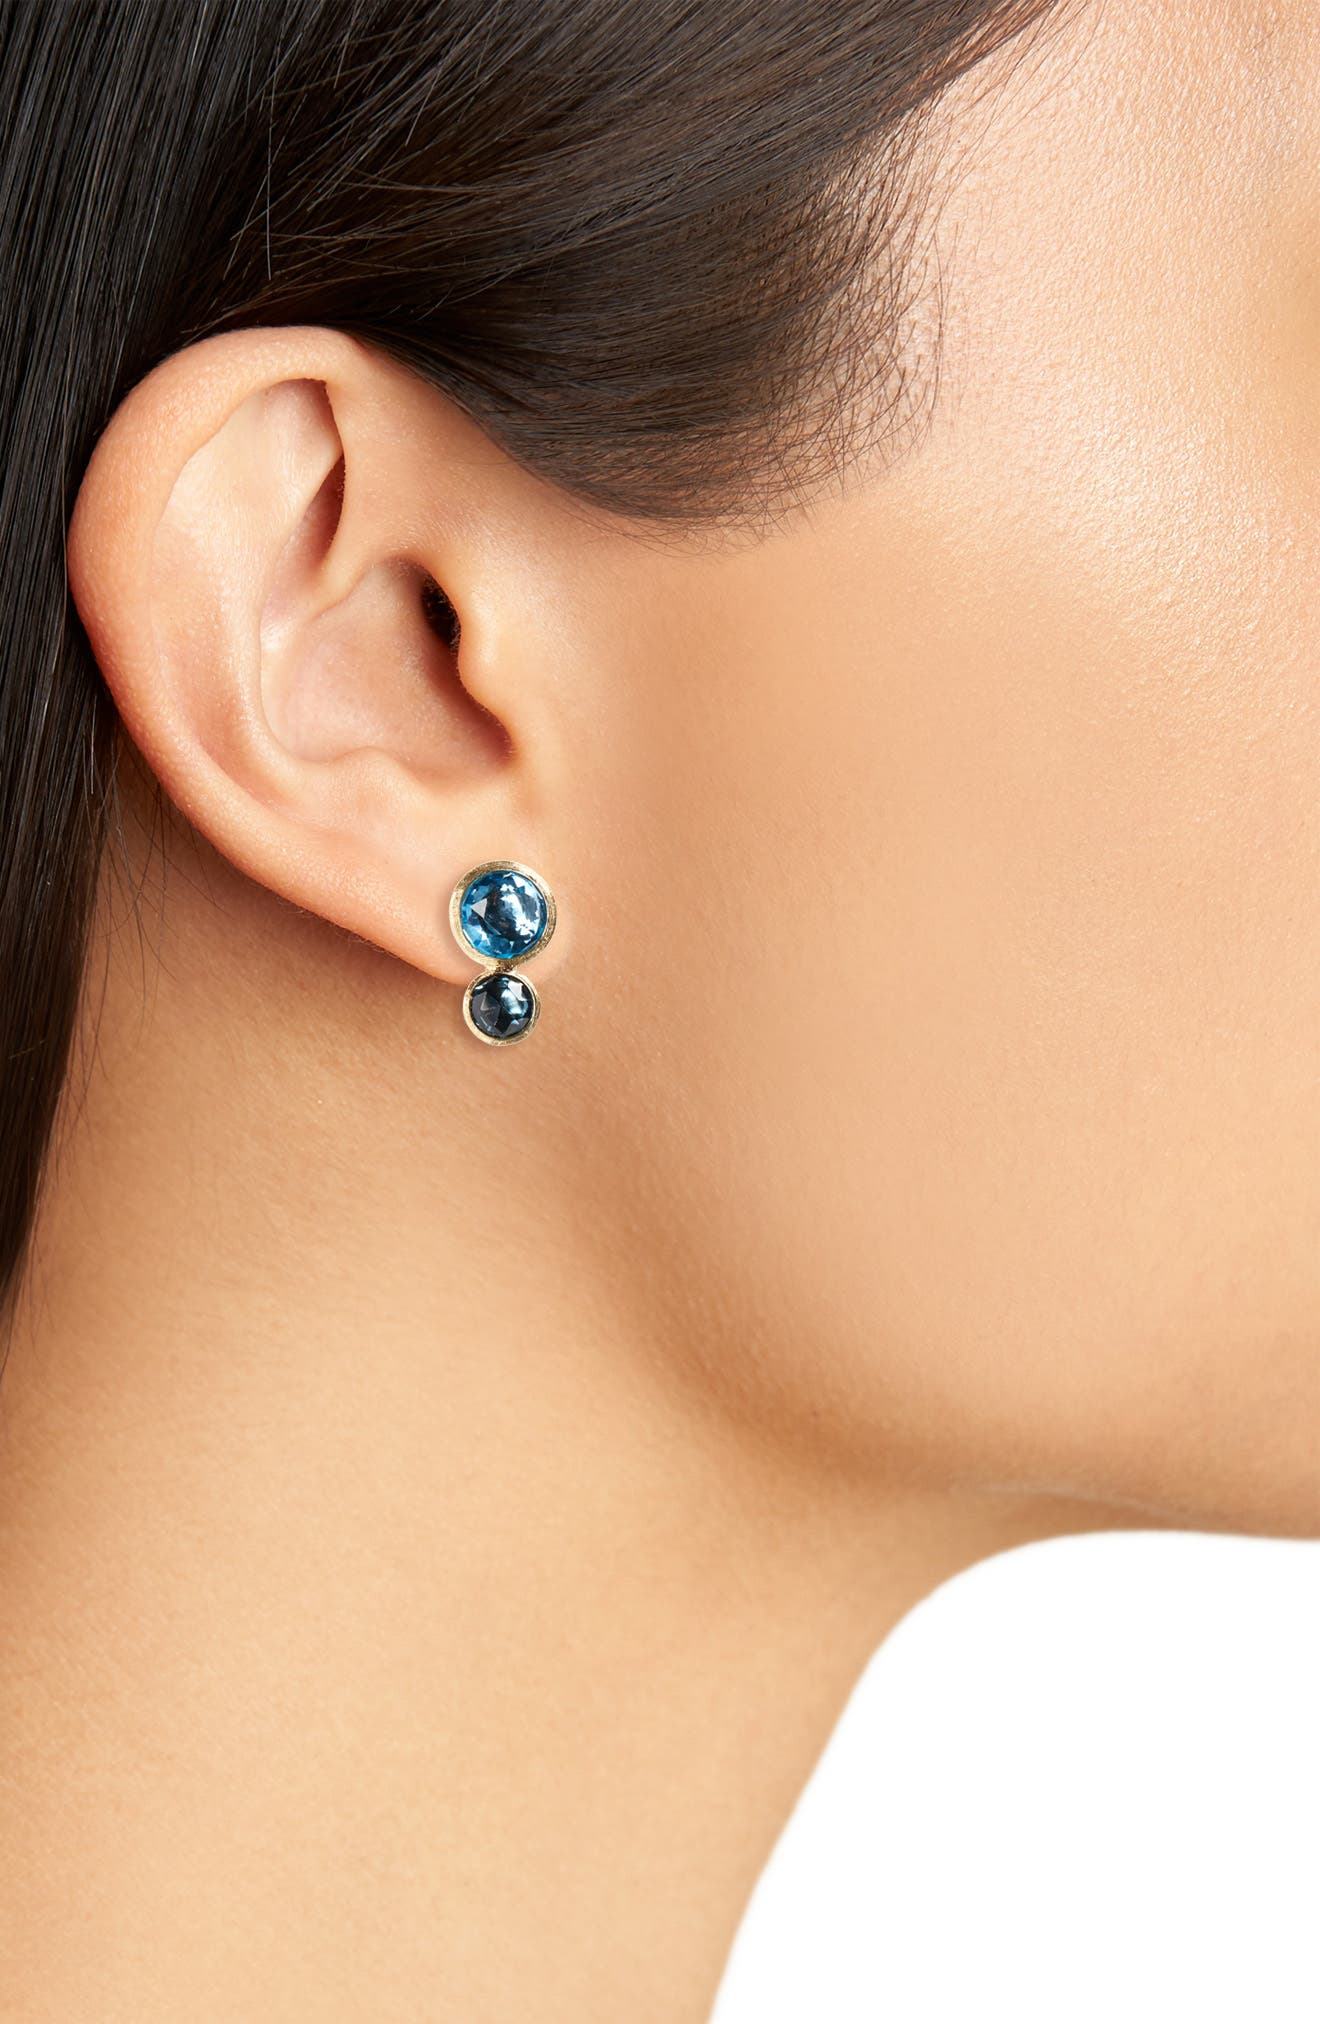 Jaipur 2-Stone Blue Topaz Stud Earrings,                             Alternate thumbnail 2, color,                             710